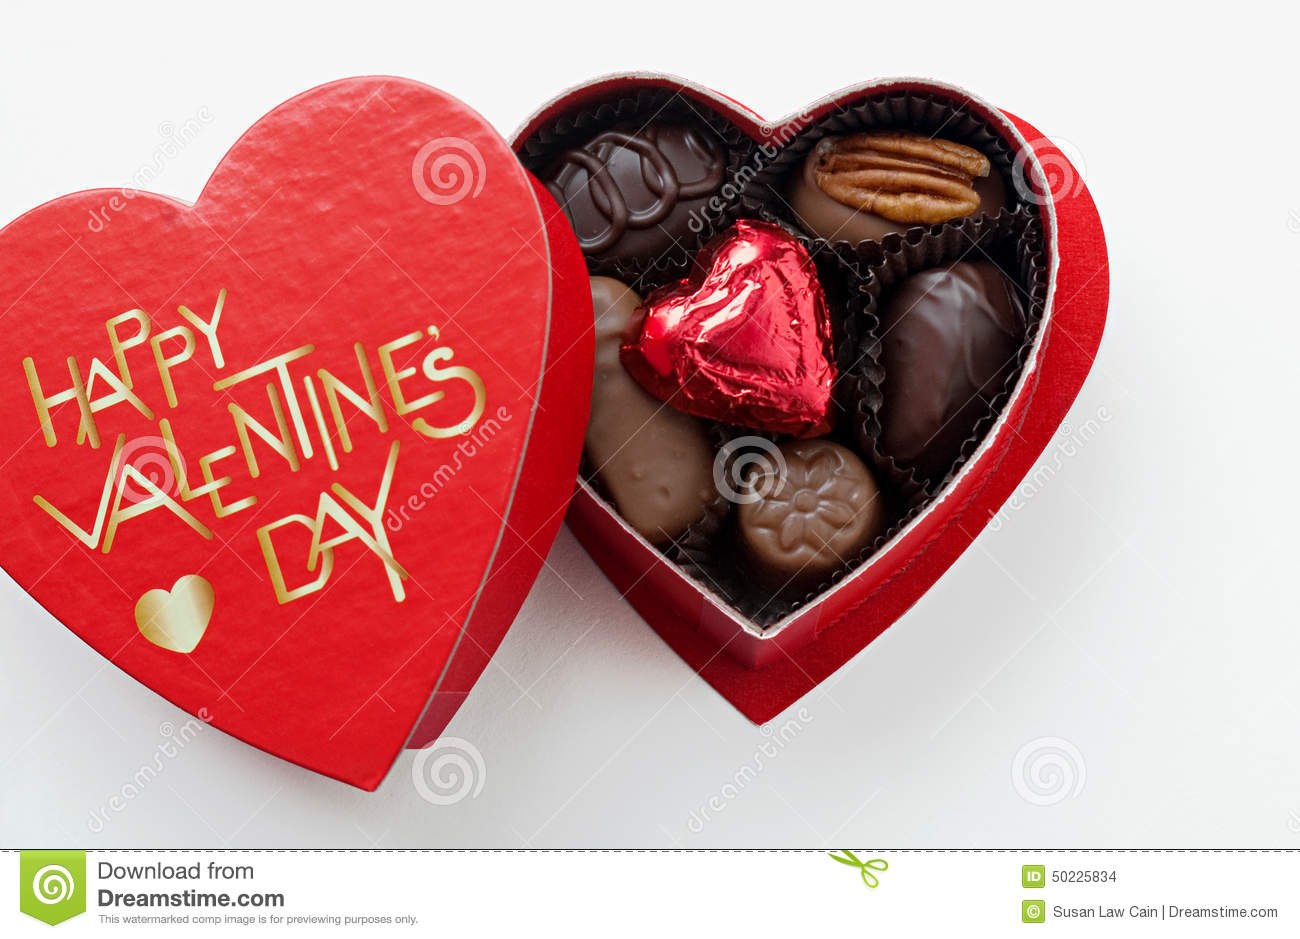 Valentines Day Chocolates Stock Photo - Image: 50225834